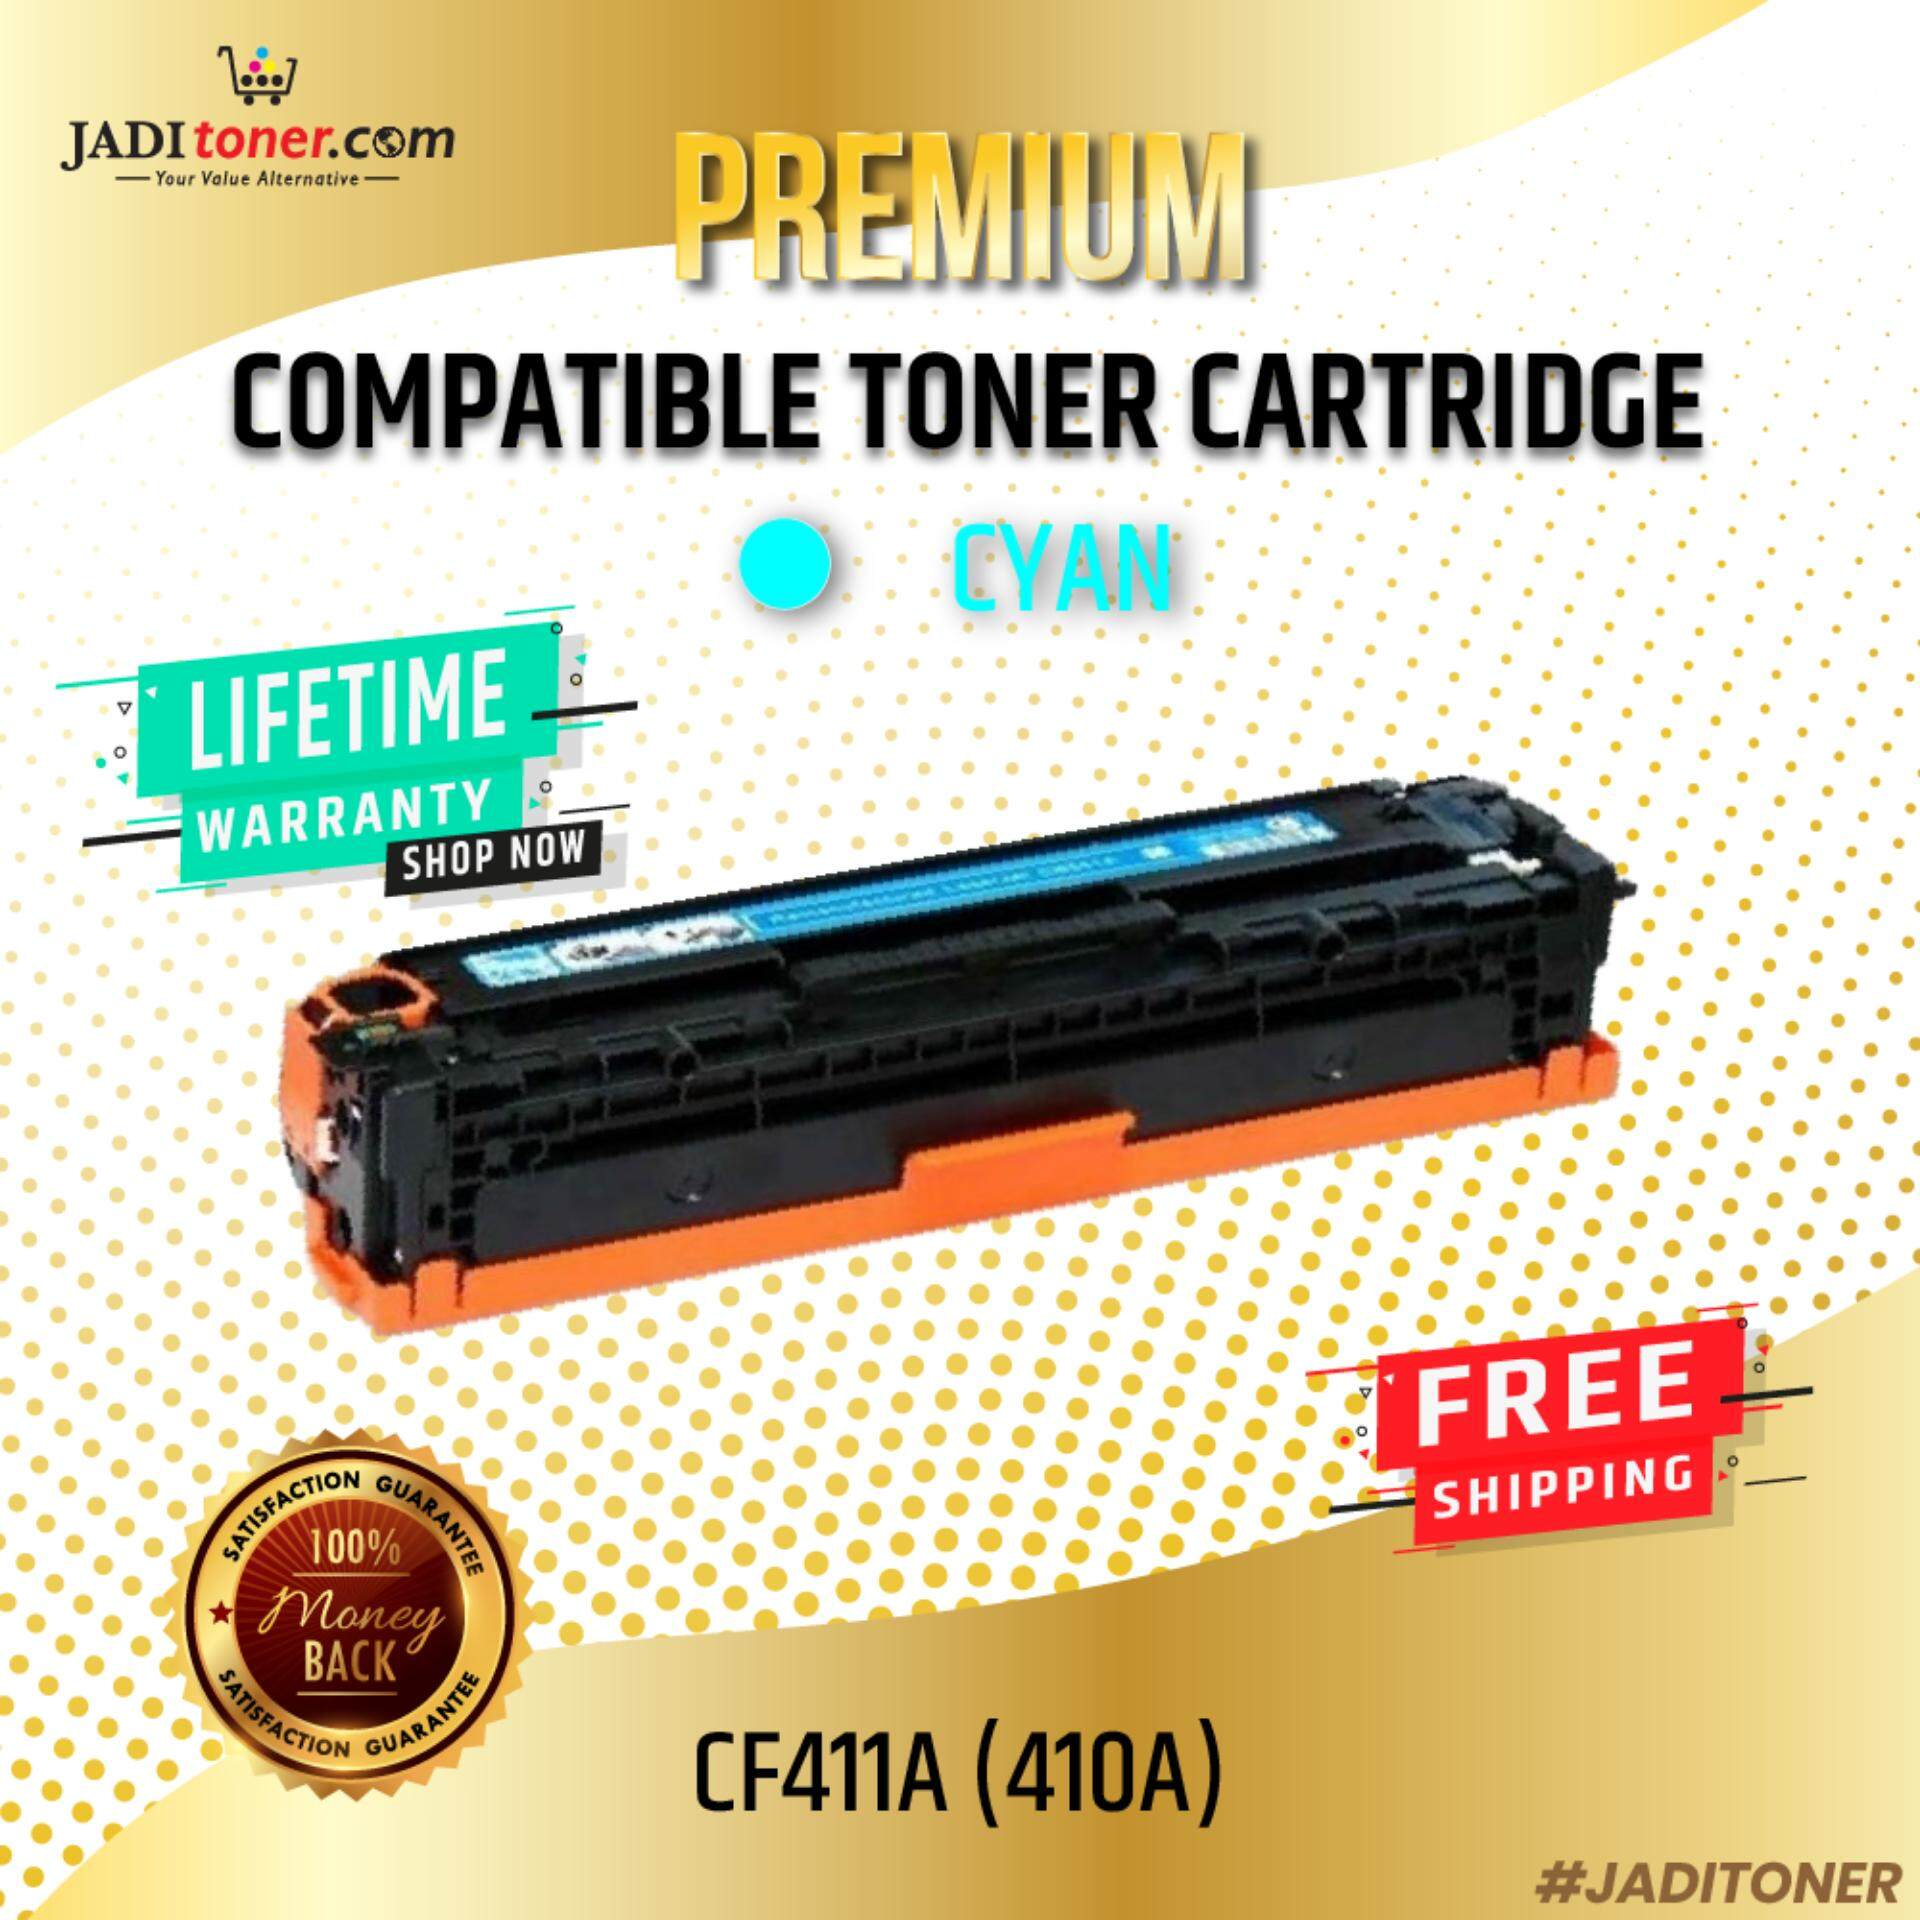 Compatible CF411A 410A Cyan Laser Toner Cartridge For Use In HP Color LaserJet Pro M452 /  M477 / MFP M377 / HP Color LaserJet Pro M452 / HP Color LaserJet Pro MFP M477 / HP Color LaserJet Pro MFP M377 / HP CF411 411A